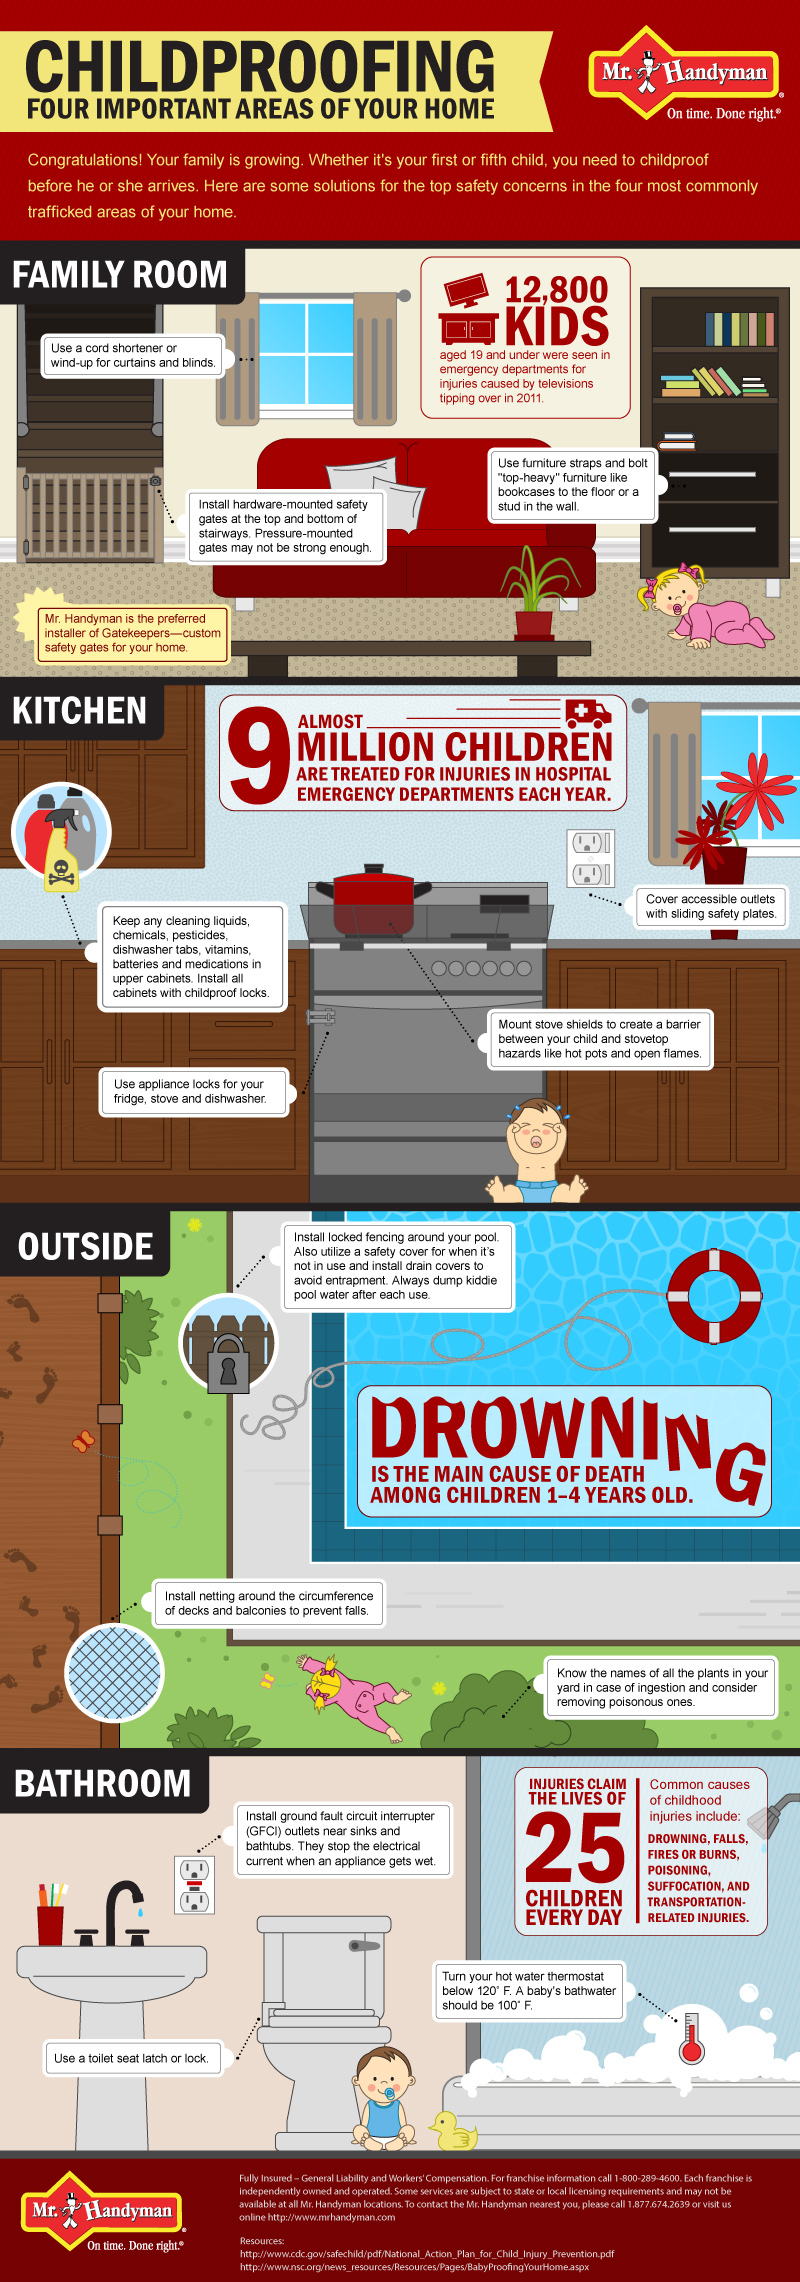 Oneupweb_Mr-Handyman_Childproofing-infographic